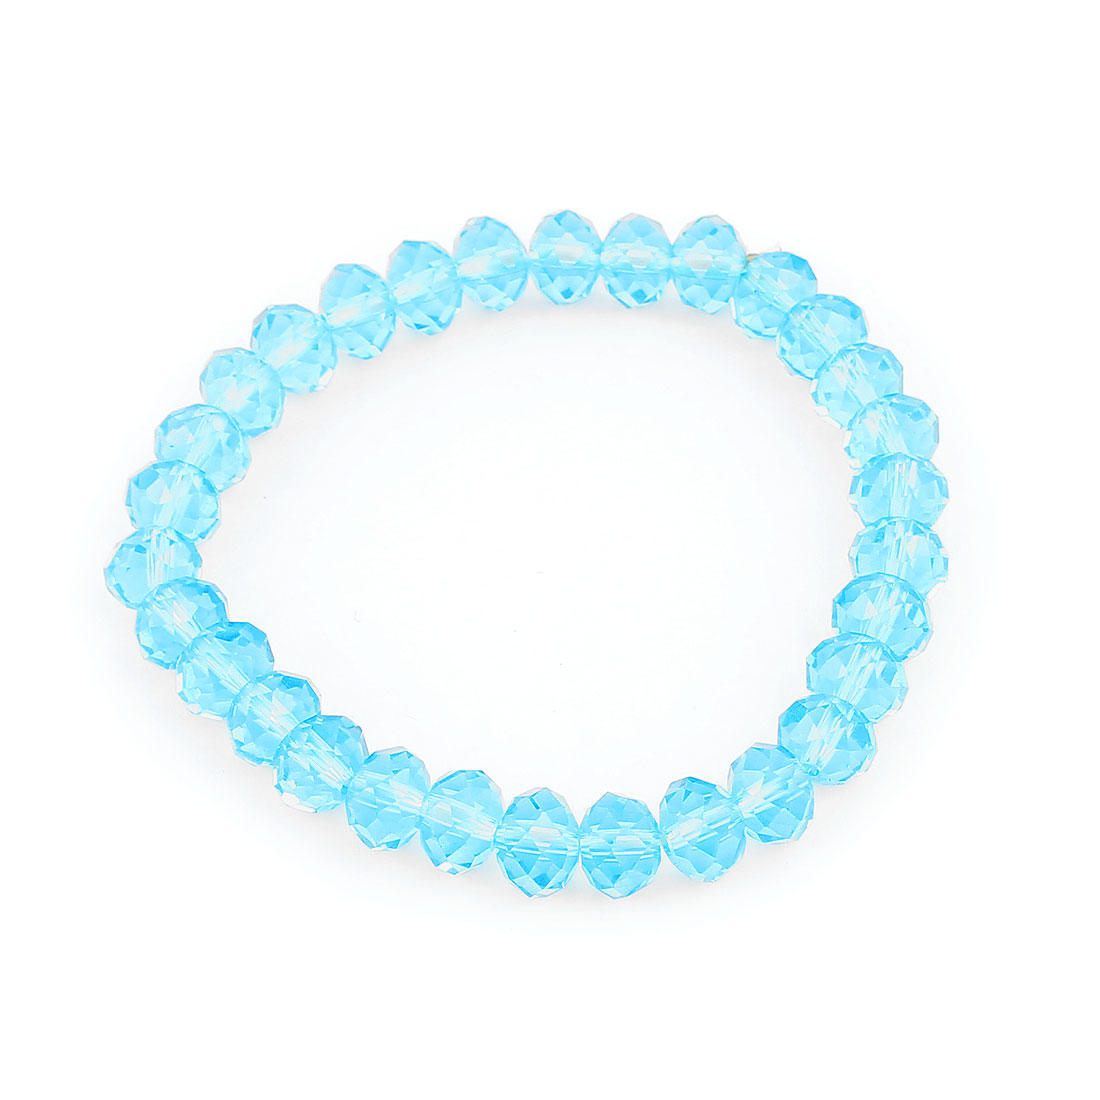 Lady Faceted Faux Crystal Beads Accent Elastic Band Wrist Ornament Bracelet Blue